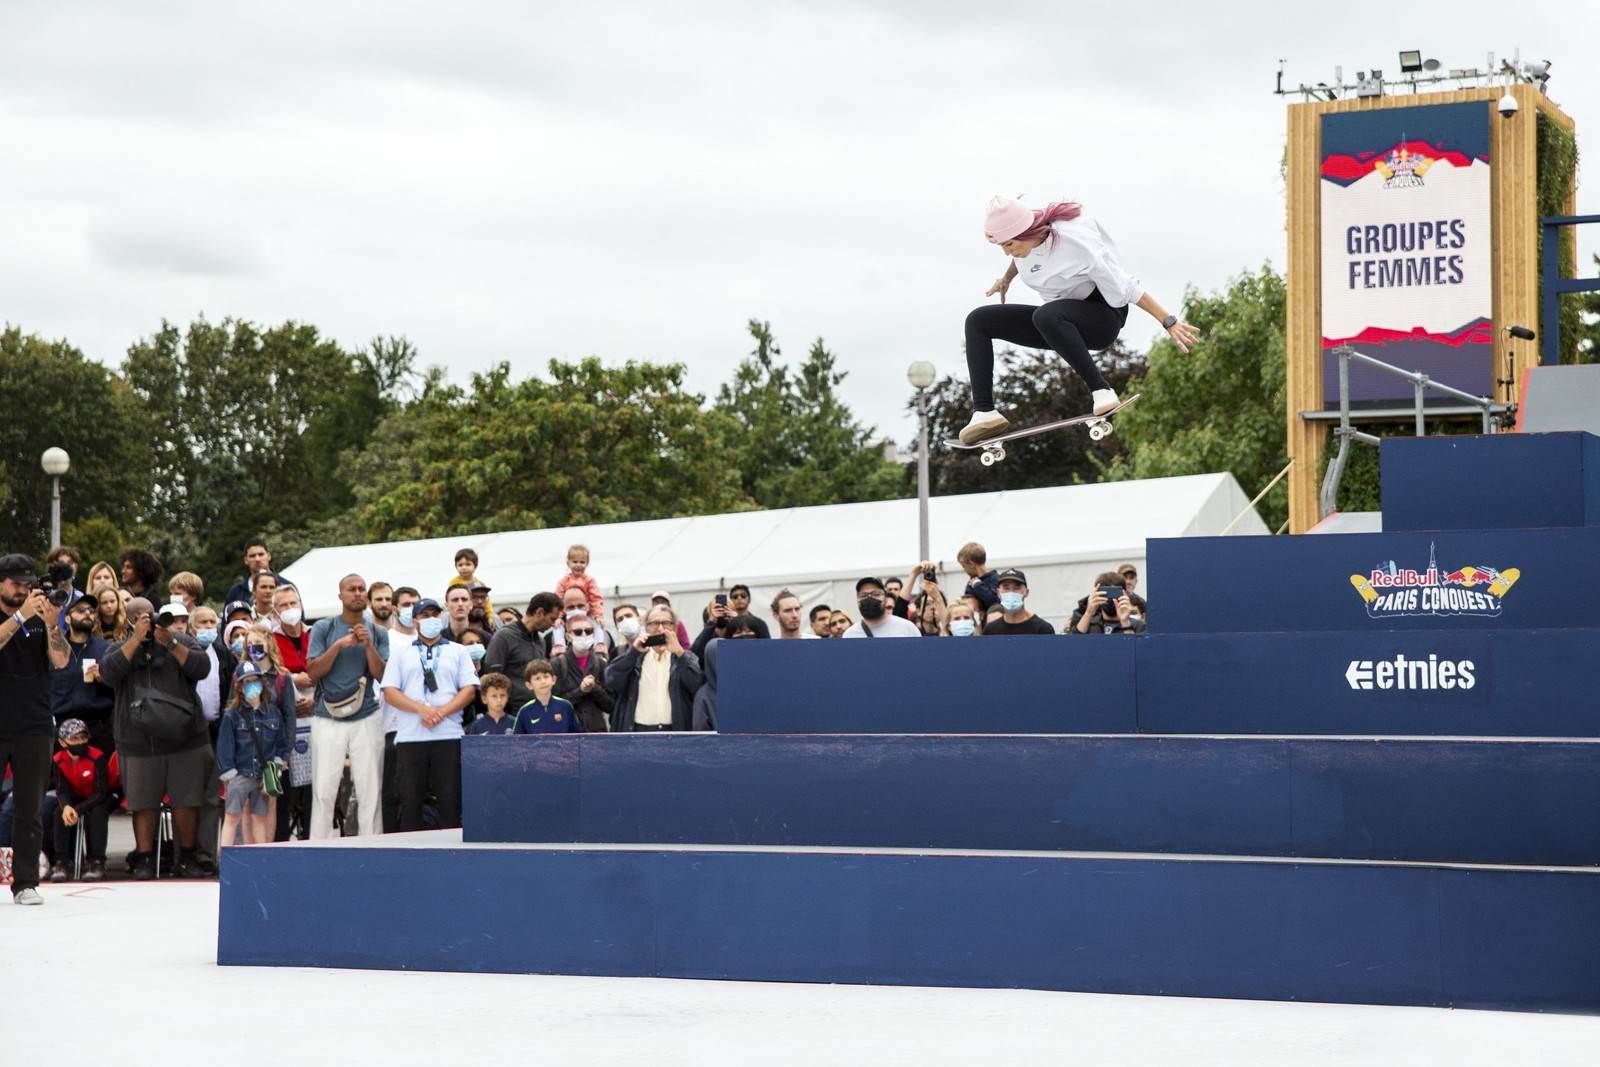 Trevor McClung and Leticia Bufoni Take Top Honors At Red Bull's 'Paris Conquest'